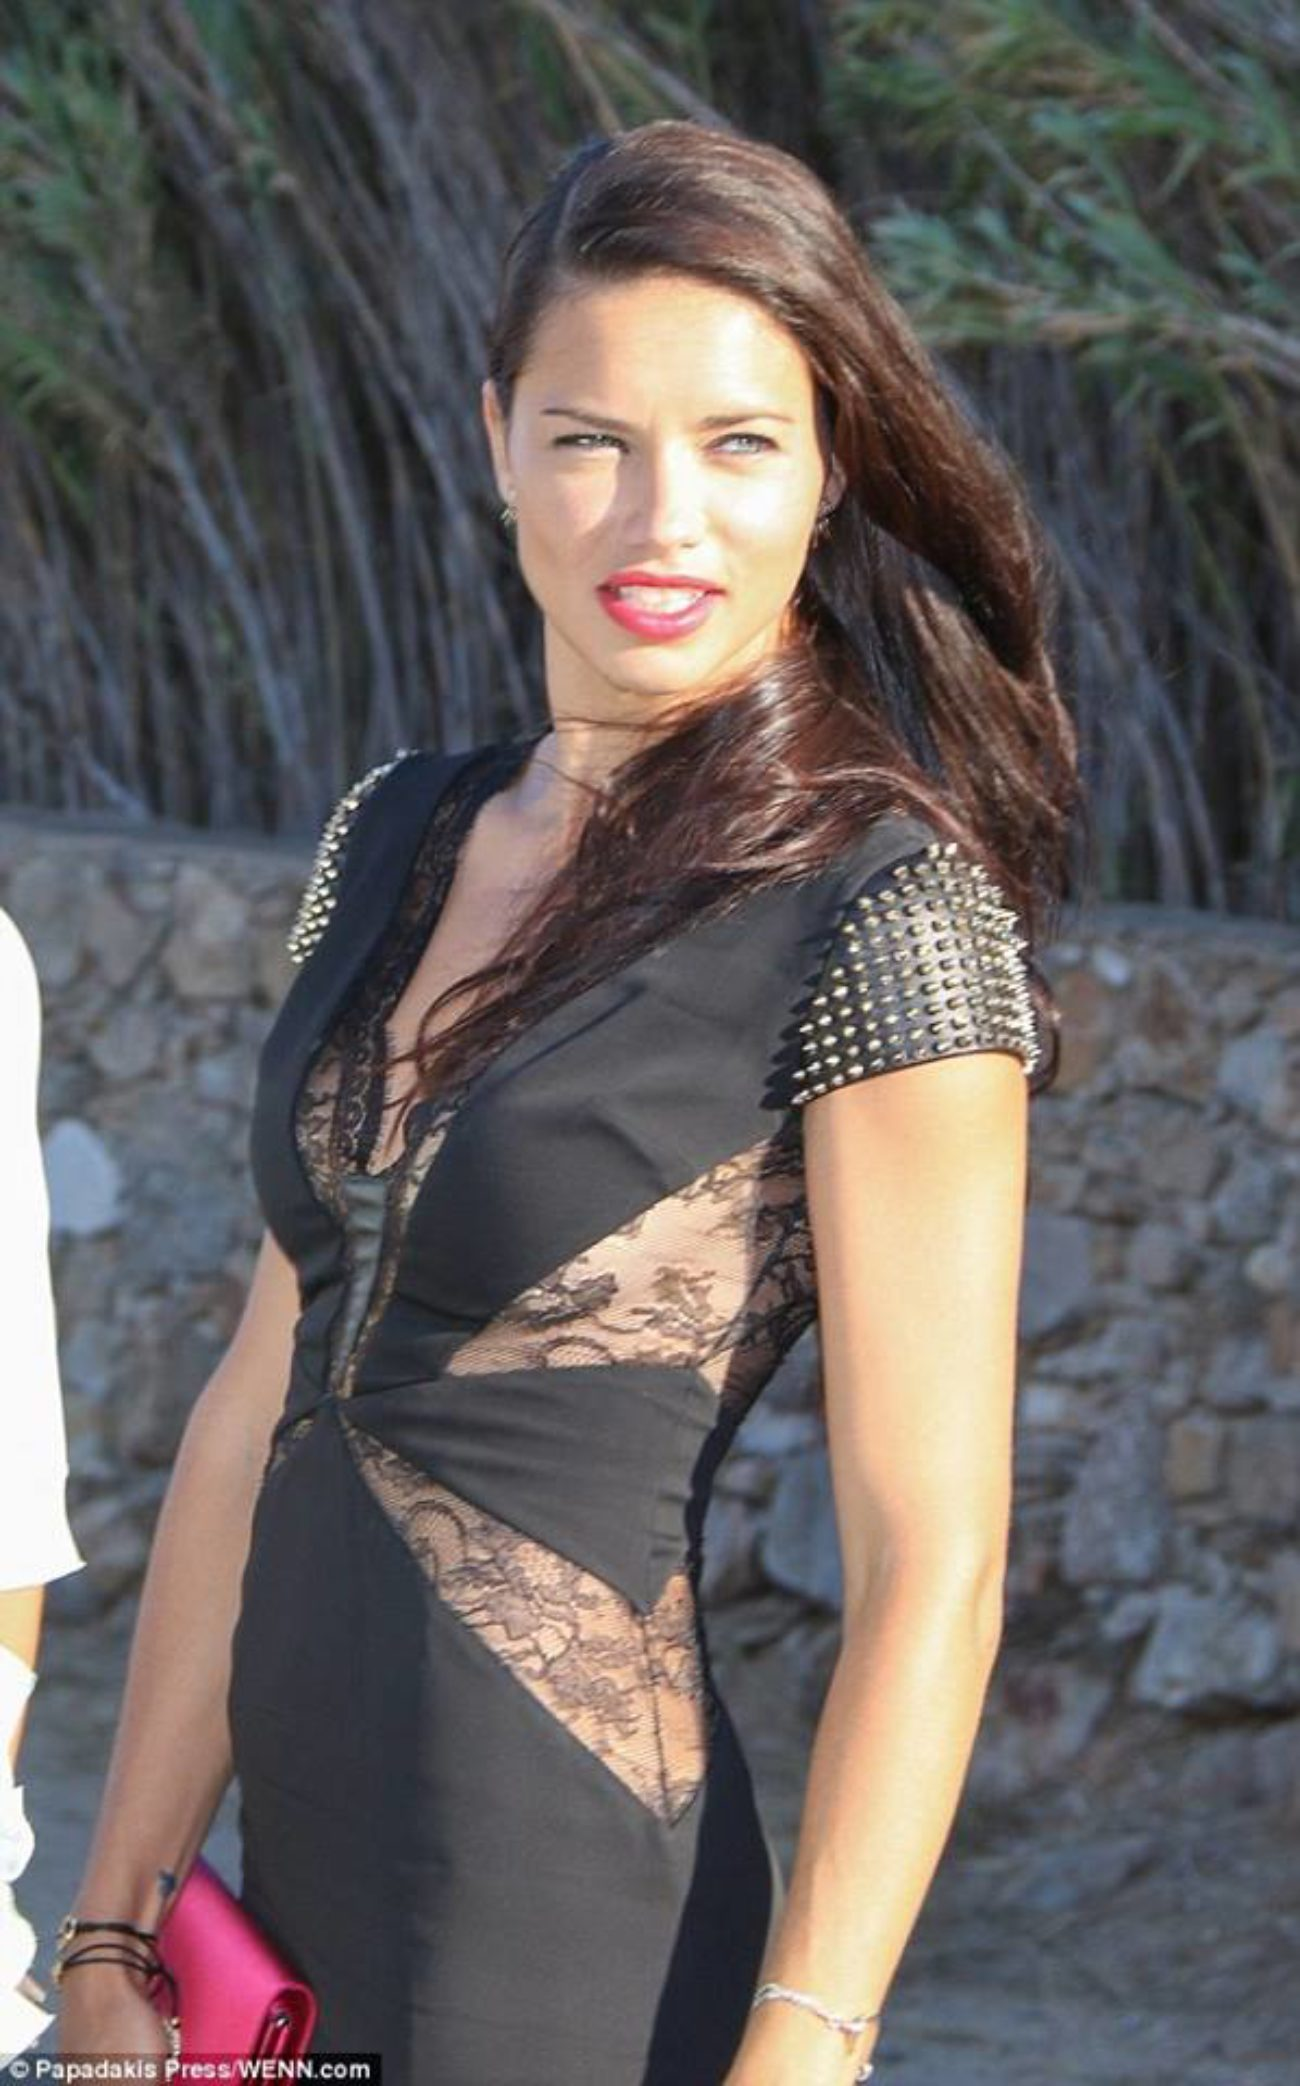 Working with Adriana Lima in Greece